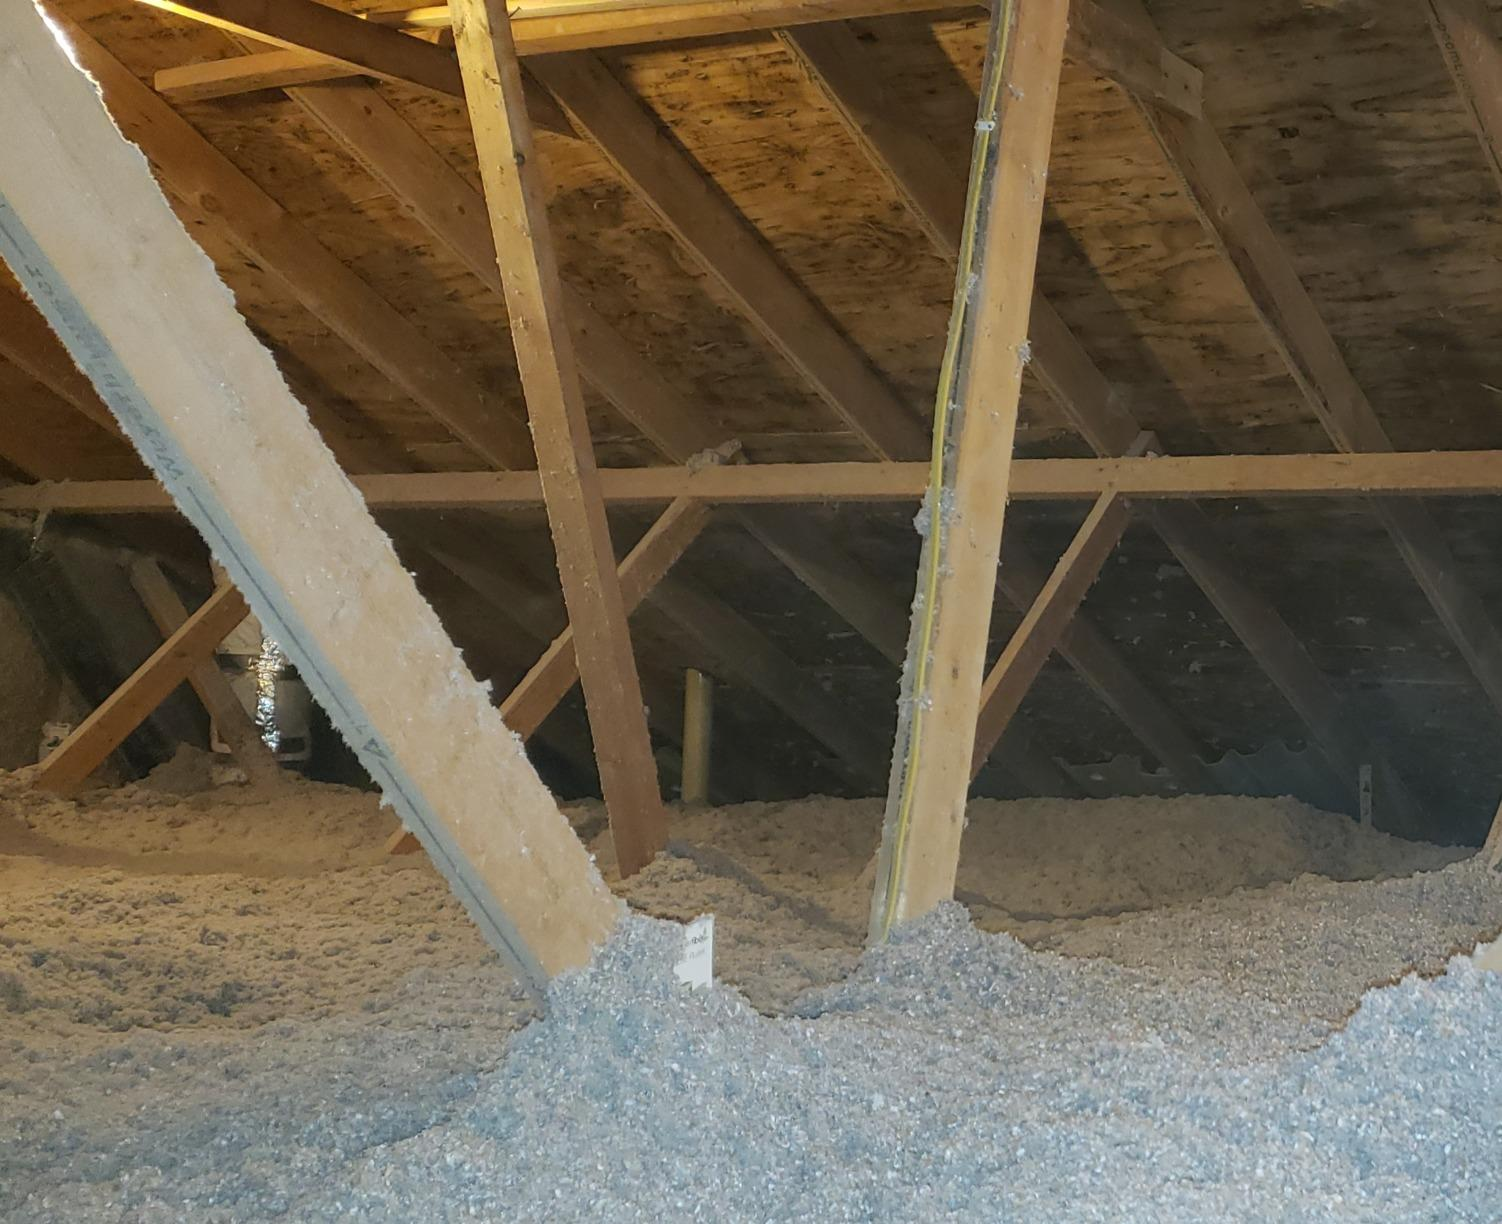 Bellevue Attic Insulation Project - After Photo